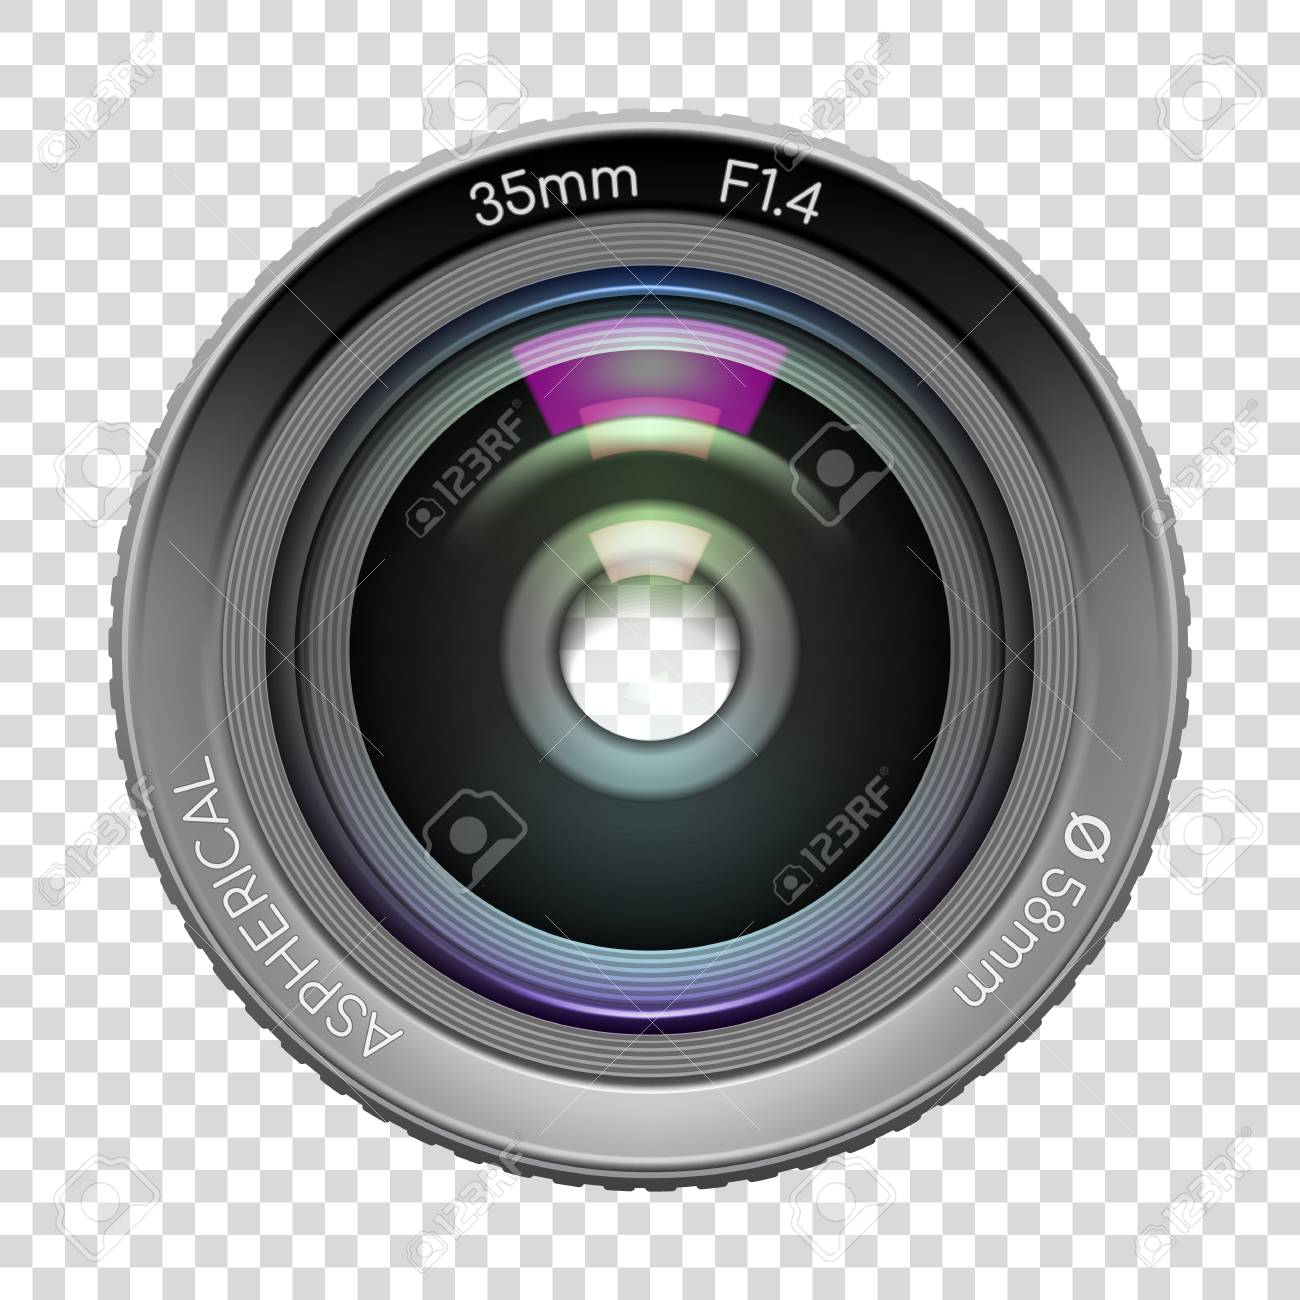 Highly Detailed Video Or Photo Camera Lens 35mm F1 4 Close Up Royalty Free Cliparts Vectors And Stock Illustration Image 124994389